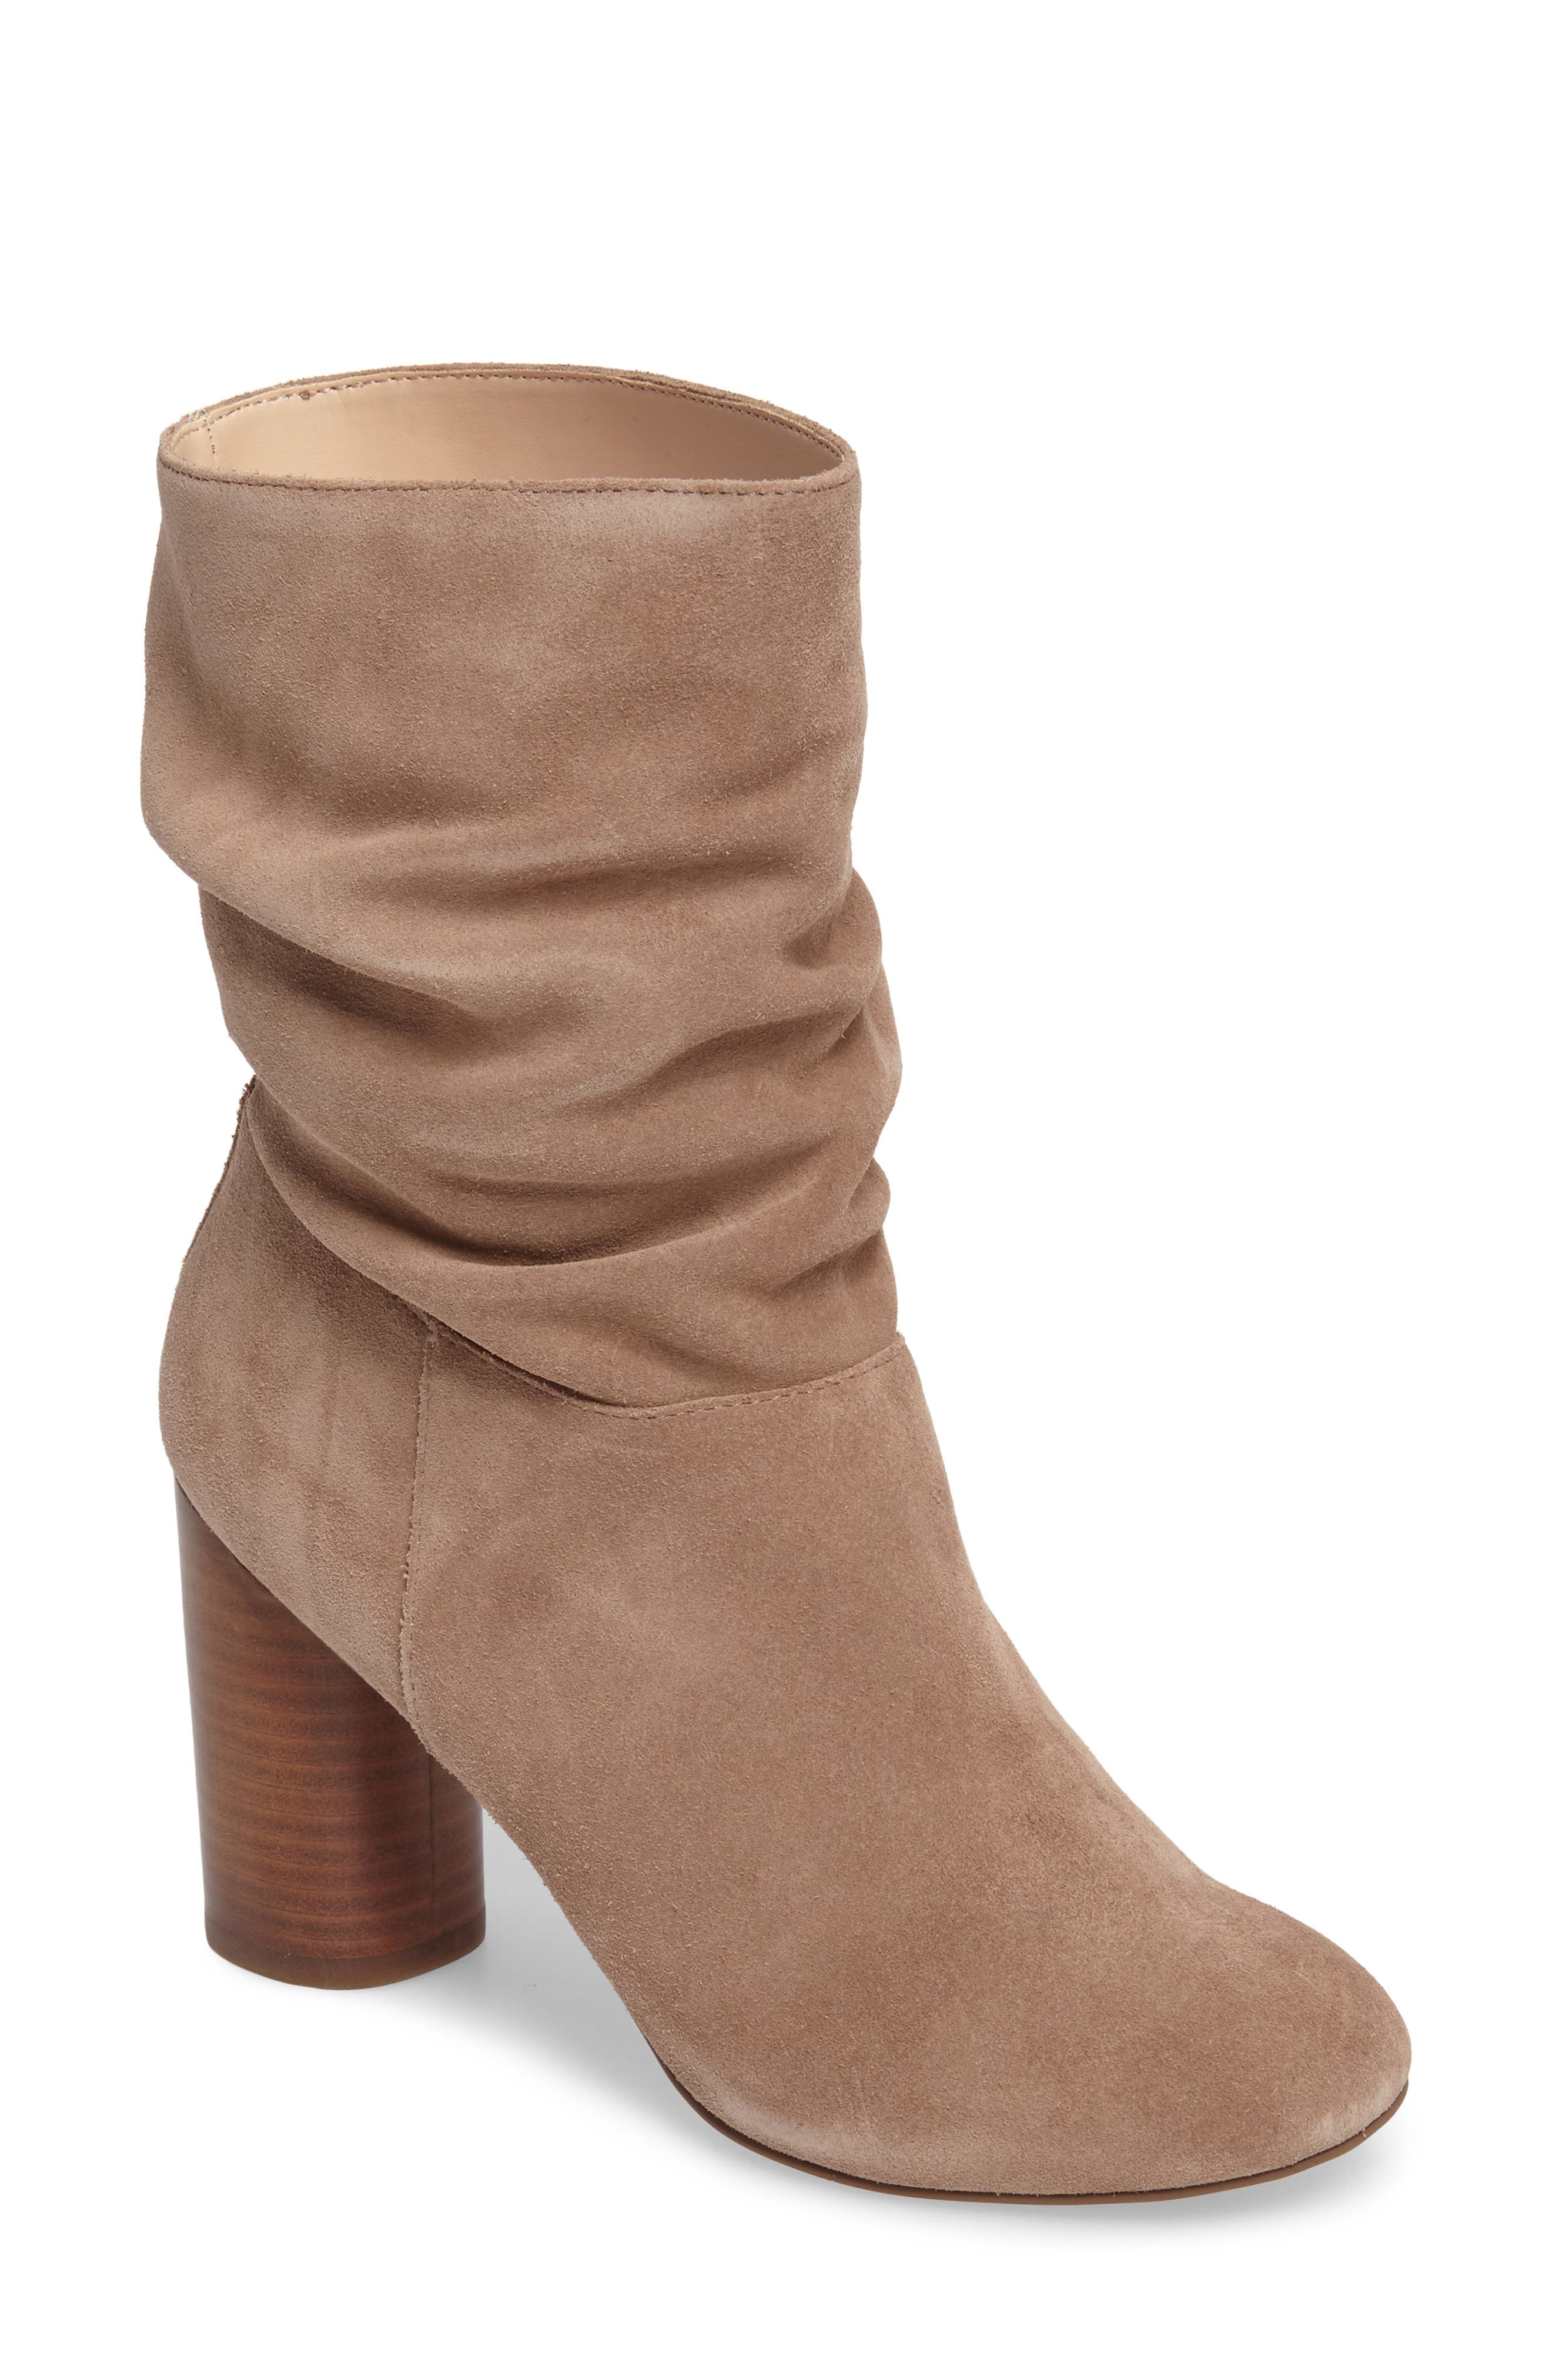 Belen Slouchy Bootie,                         Main,                         color, Night Taupe